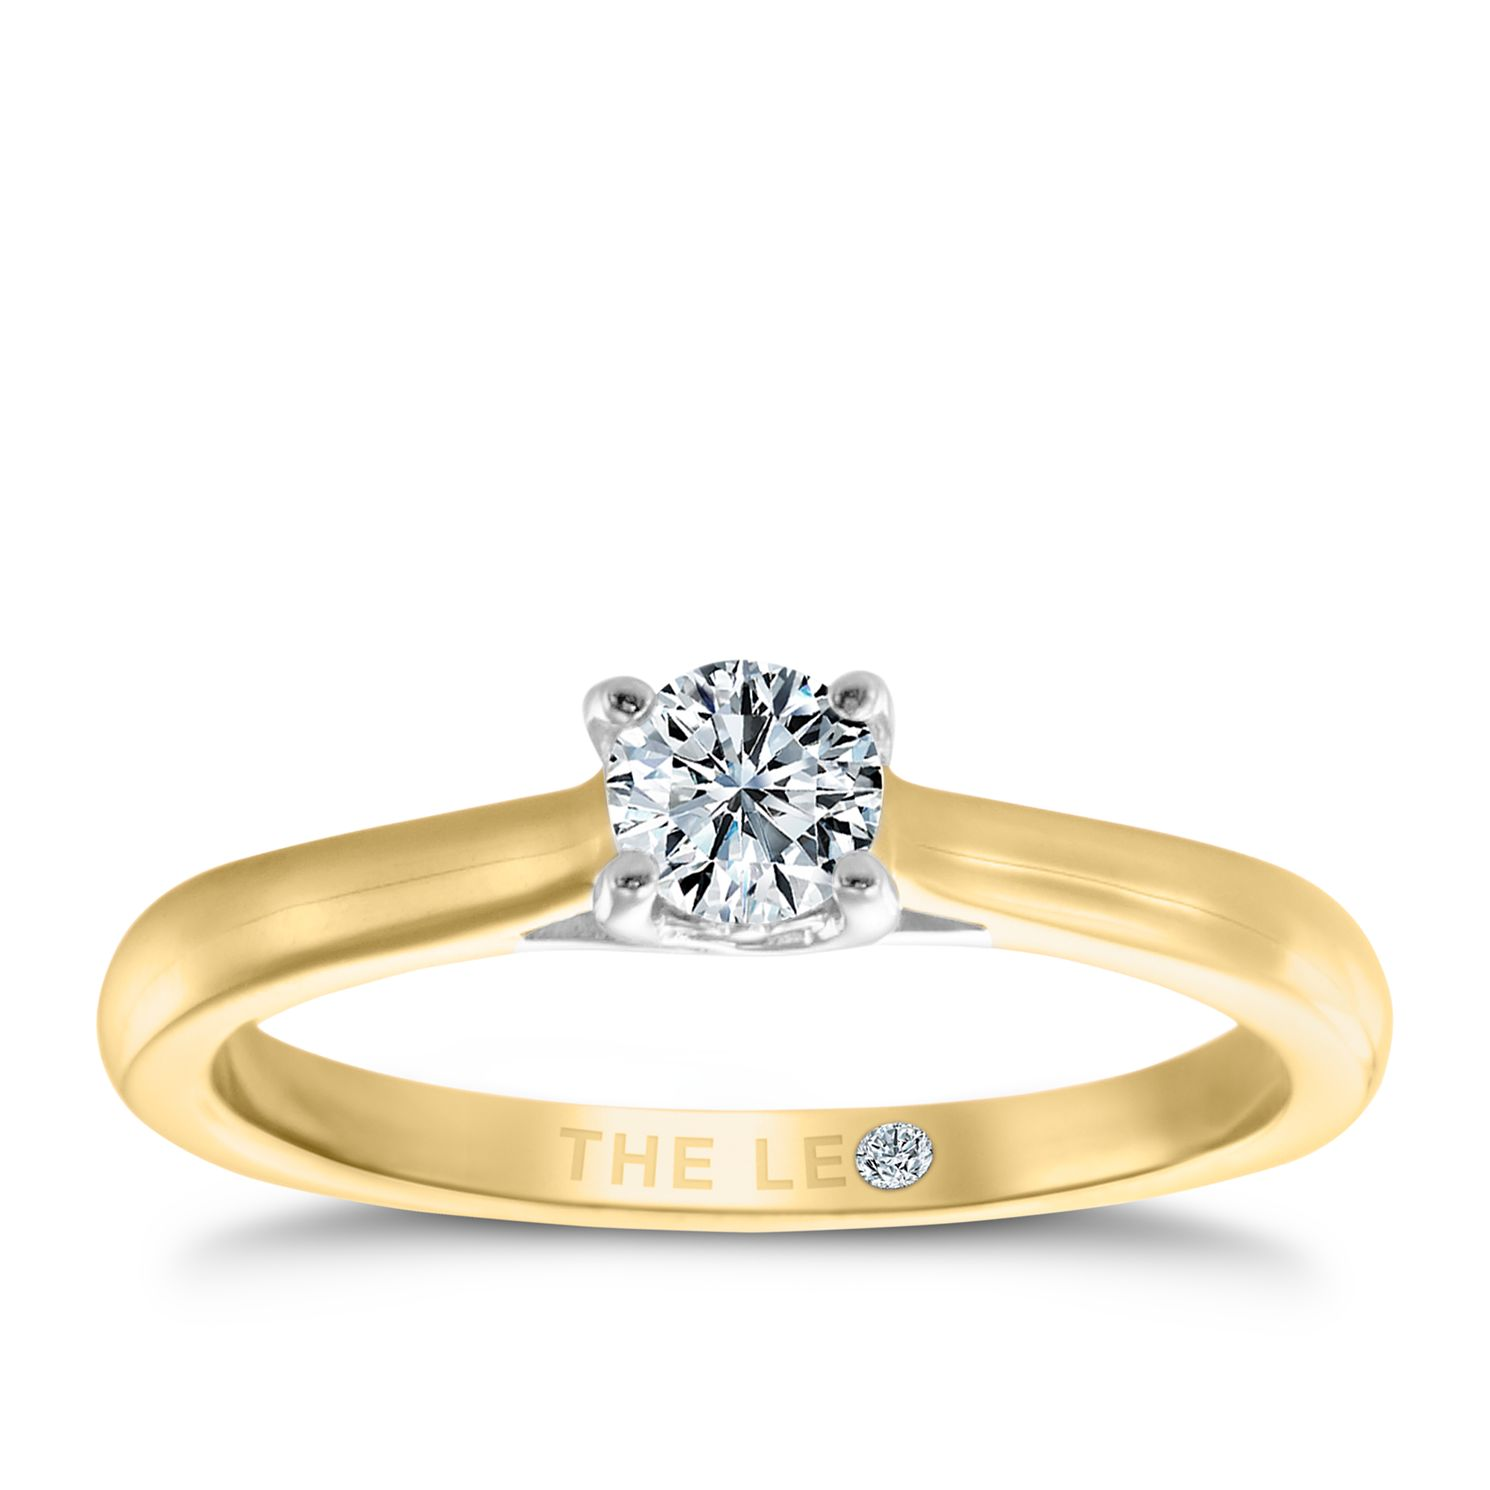 Leo Diamond 18ct Yellow & White Gold 1/4ct I-Si2 Ring - Product number 6021395